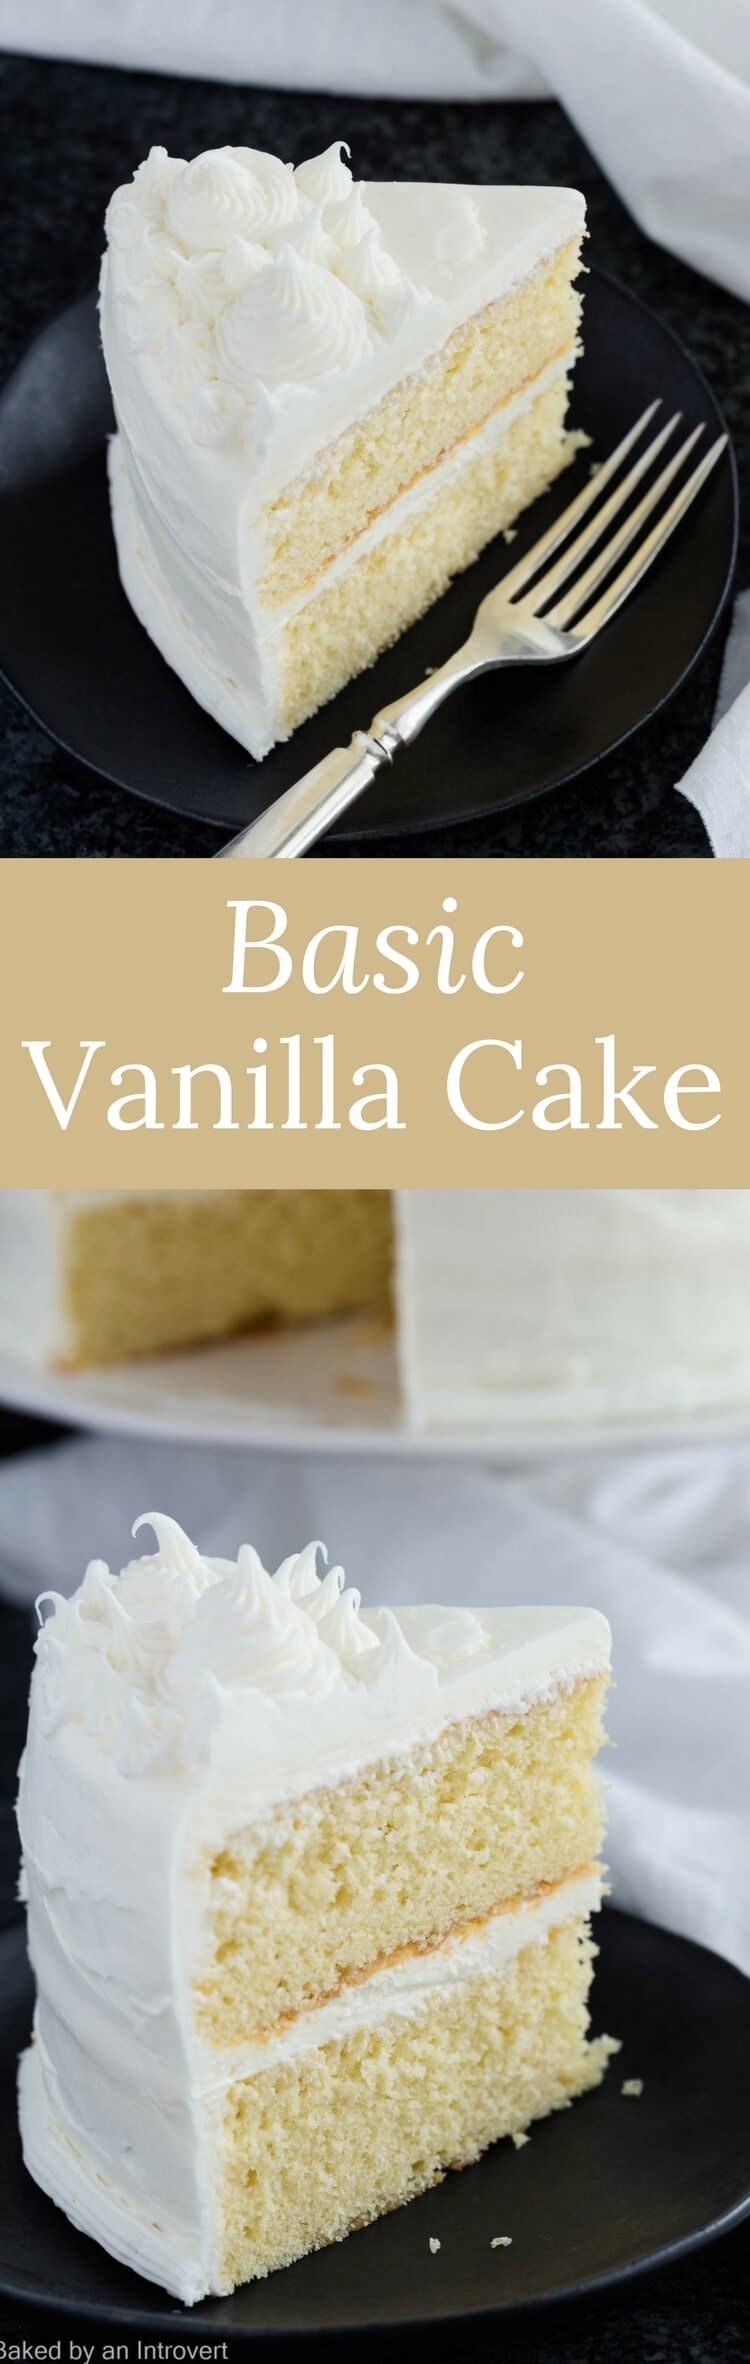 This Made From Scratch Basic Vanilla Cake Recipe Is Ery Moist And Great For